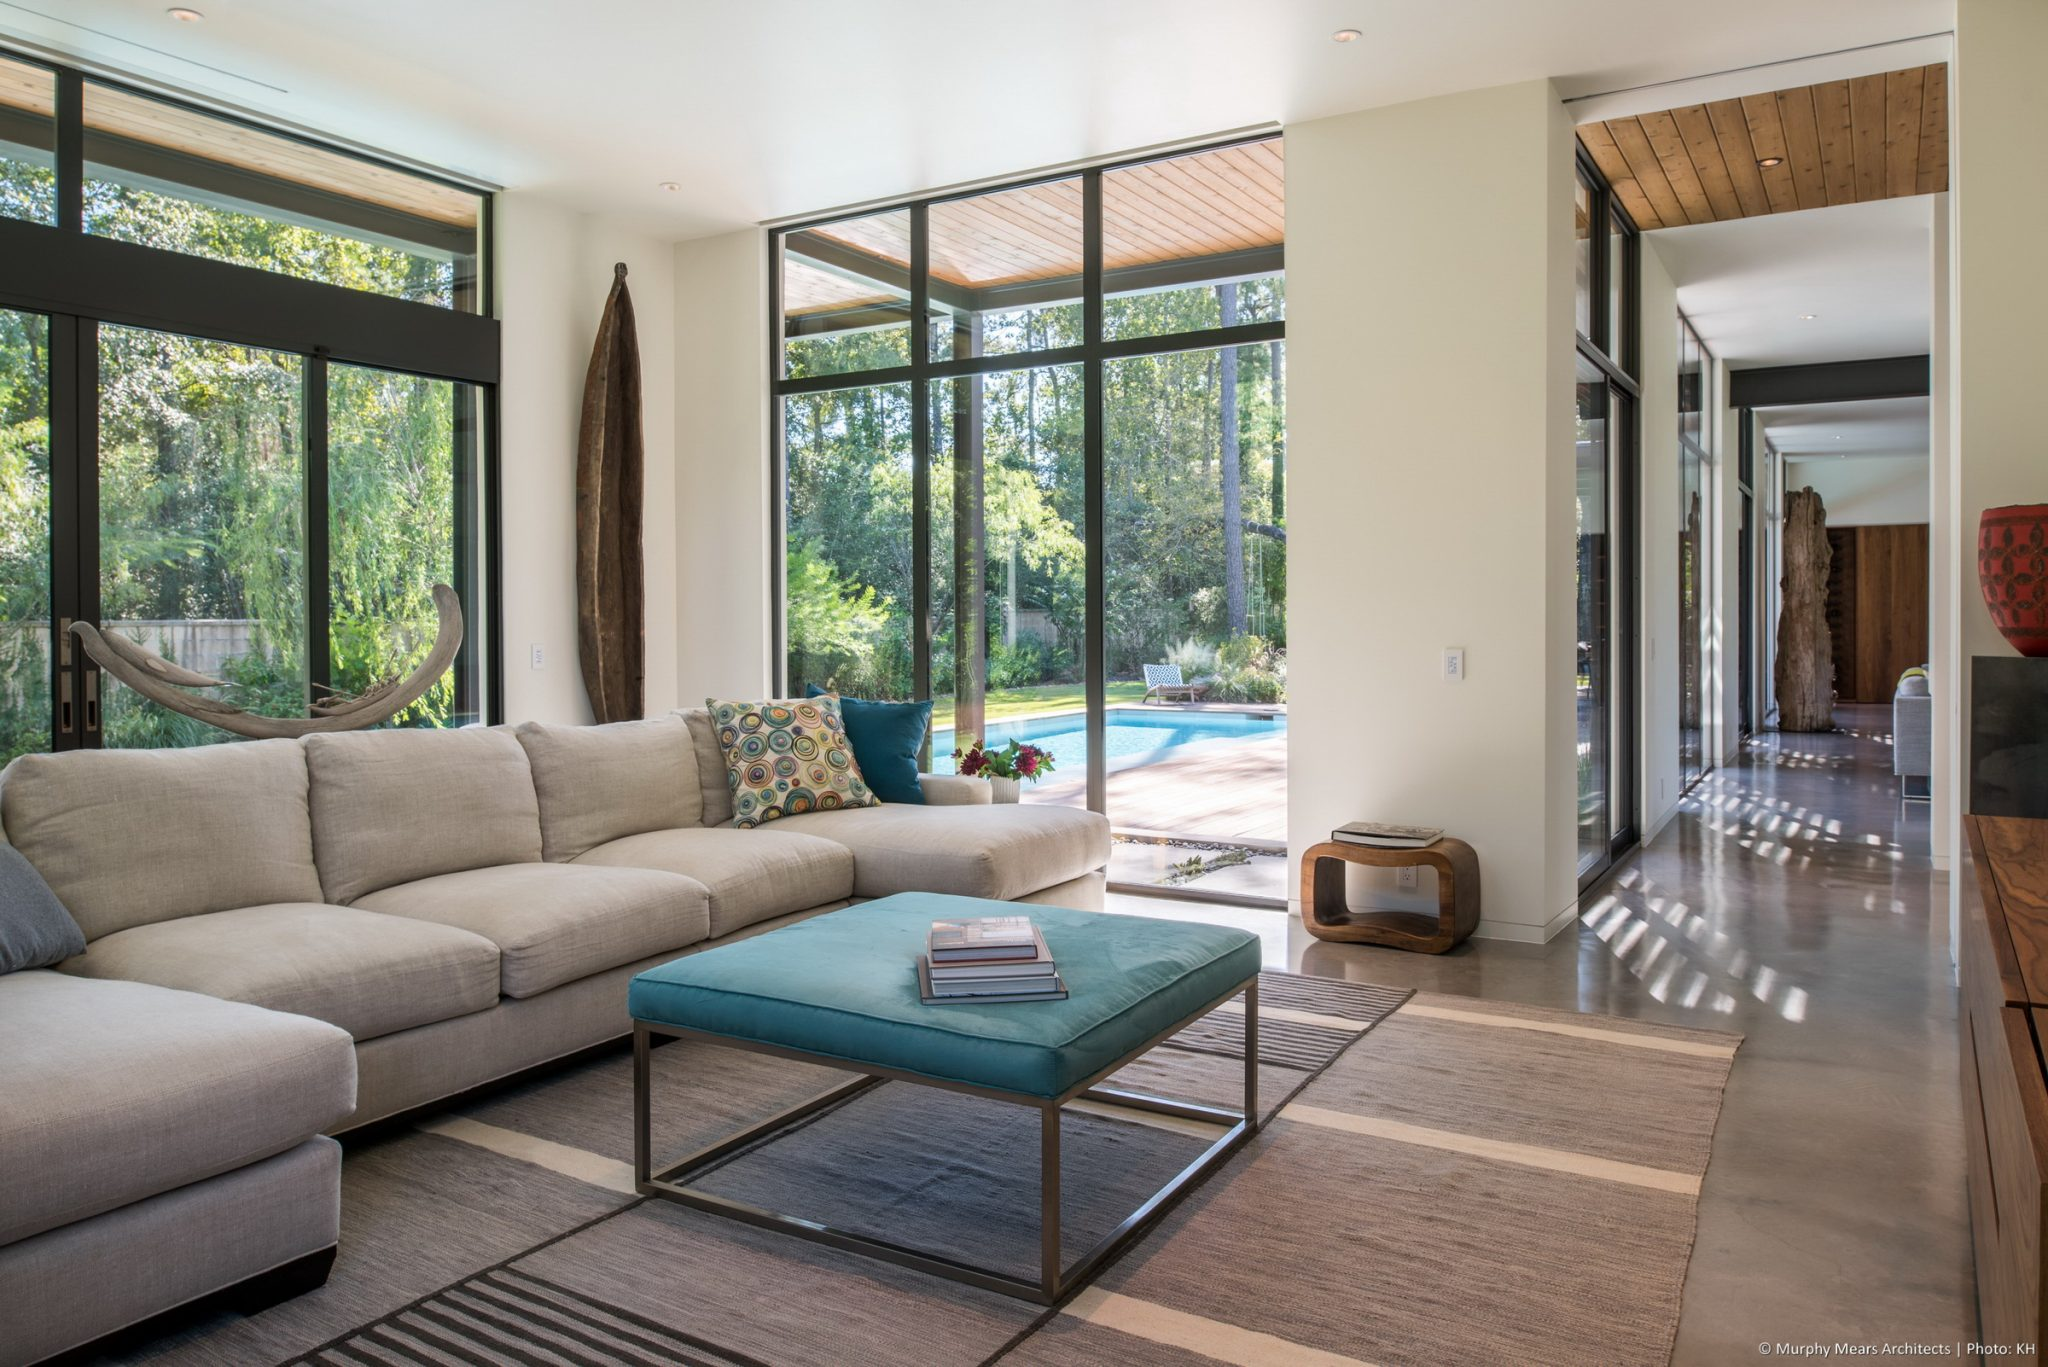 Open House - The family room at the end of the long axis through the interior, projecting into the backyard space.